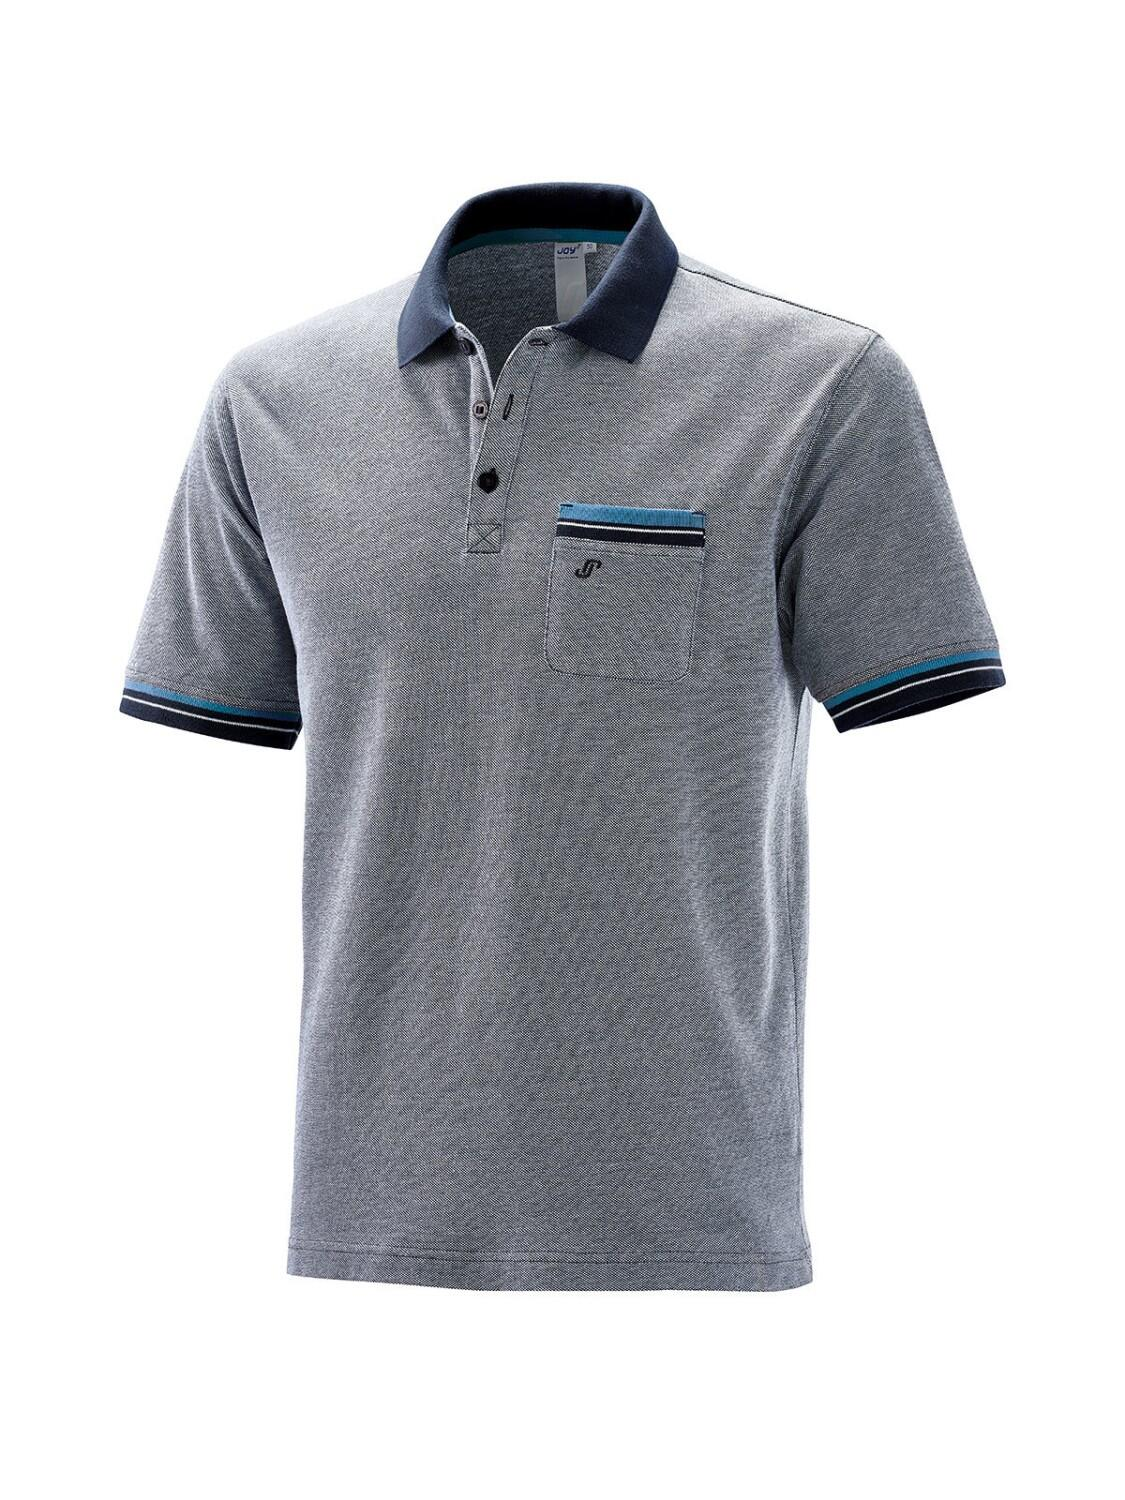 Joy Poloshirt Ingo in Farbe: night/lago